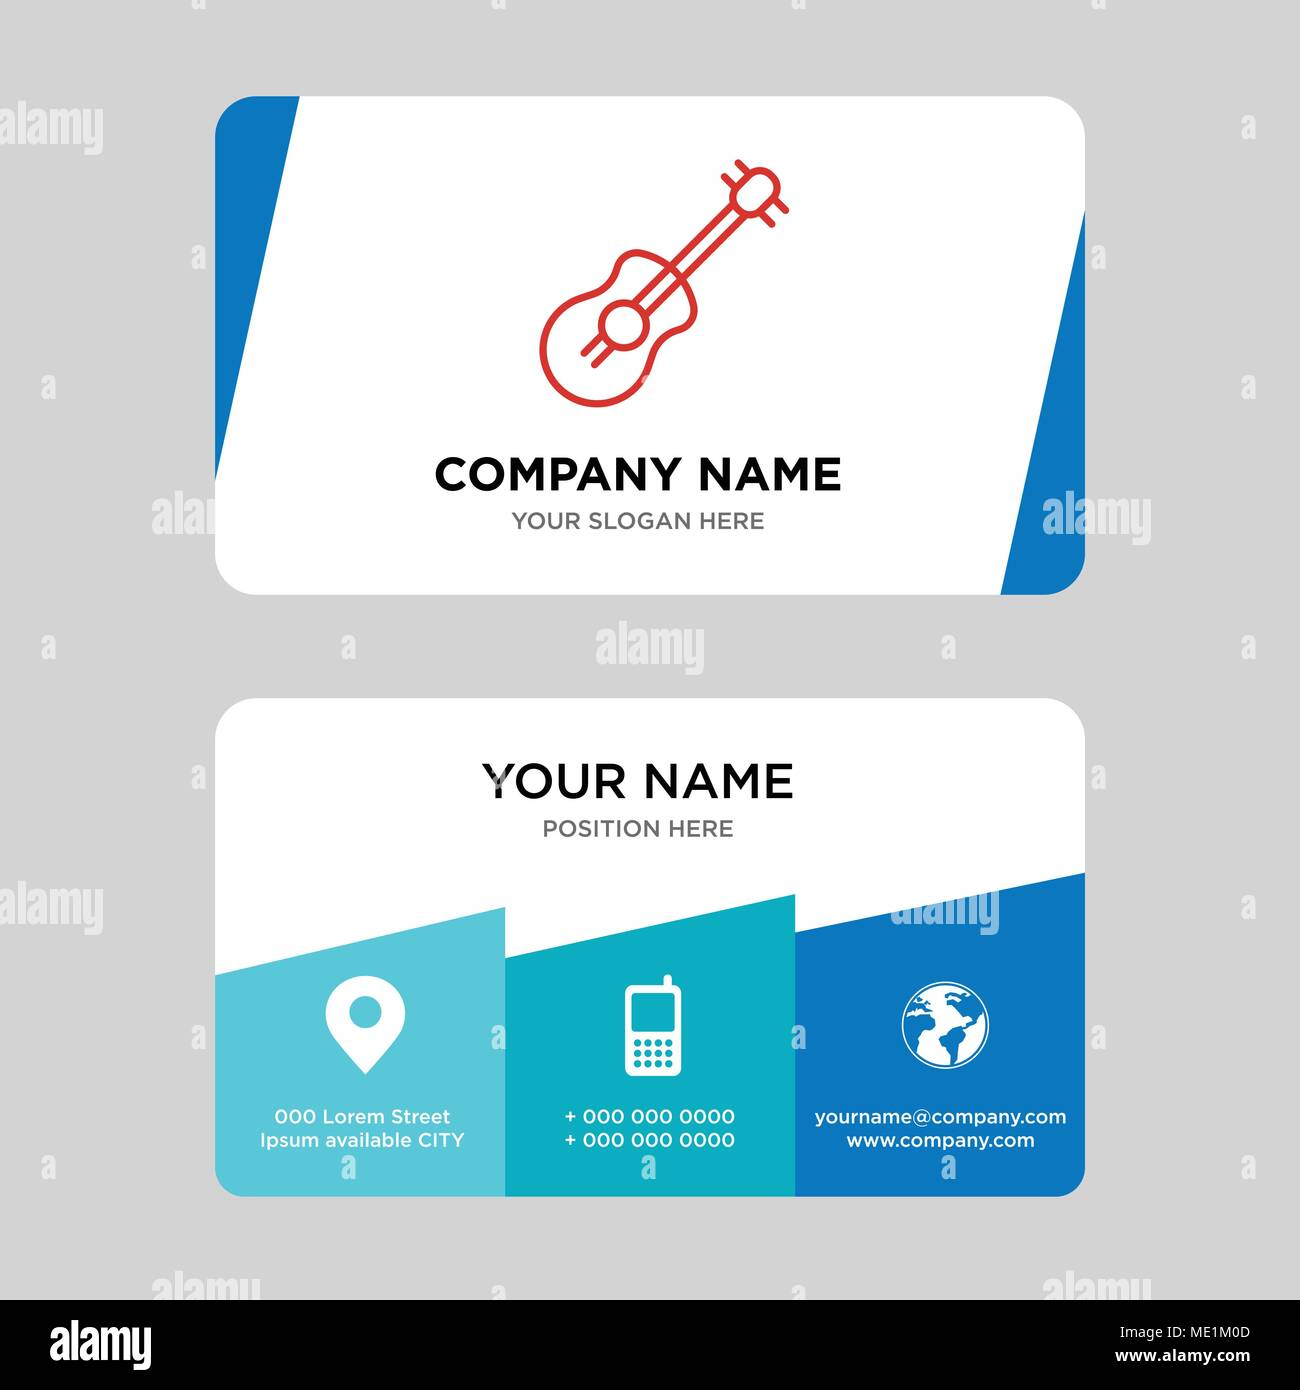 Guitar business card design template visiting for your company guitar business card design template visiting for your company modern creative and clean identity card vector illustration reheart Images